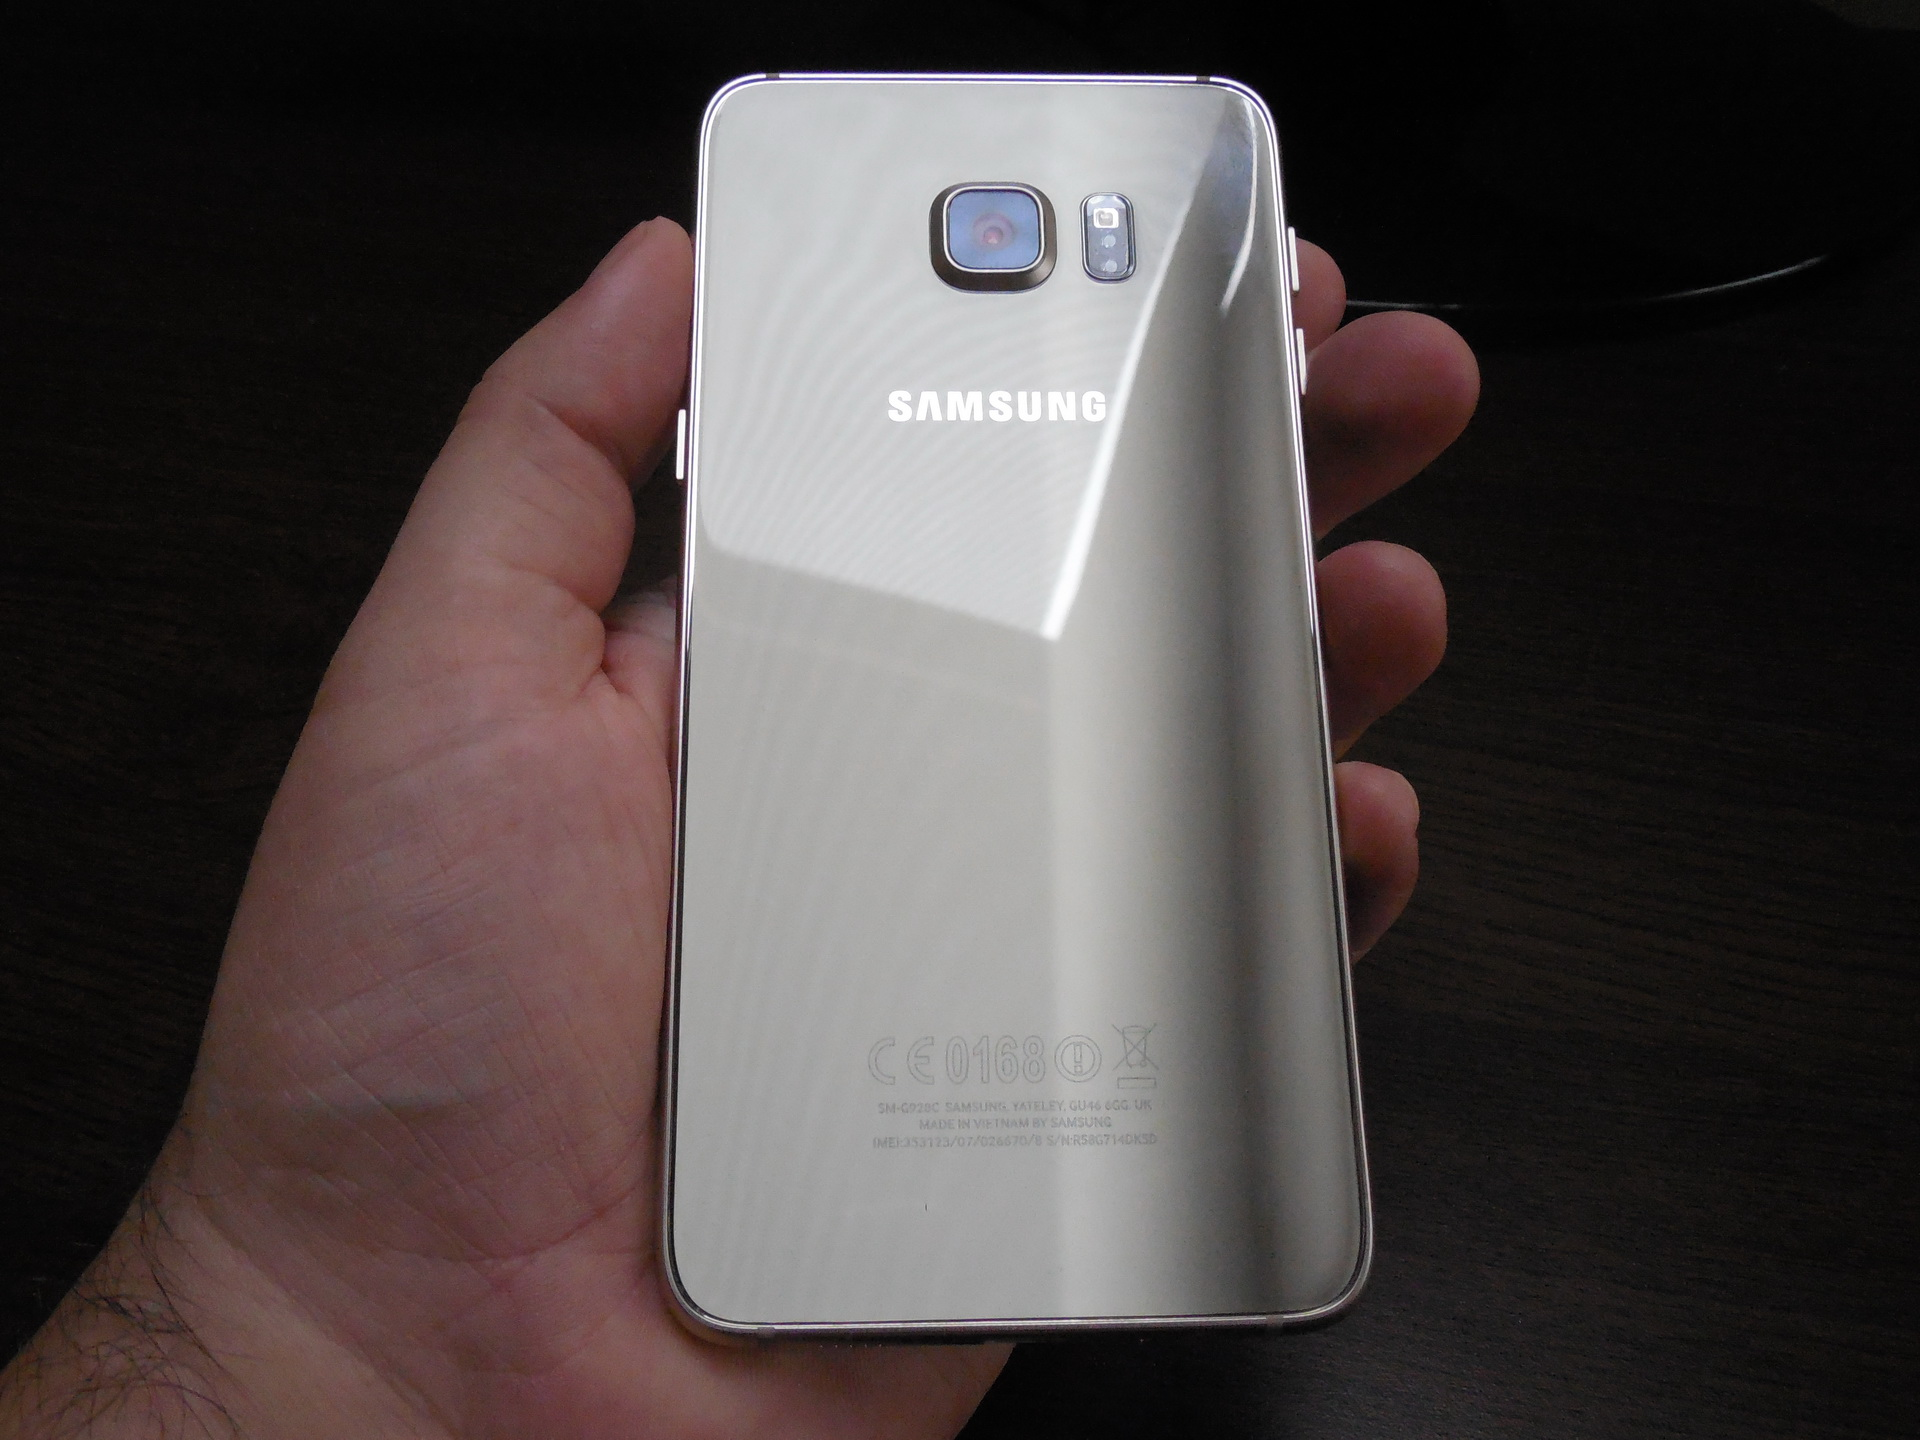 Galaxy s6 capacitive buttons the android soul - Samsung Galaxy S6 Edge Review Stunning And Gorgeous Phablet That Doesn T Take Full Advantage Of Its Edge Video Gsmdome Com